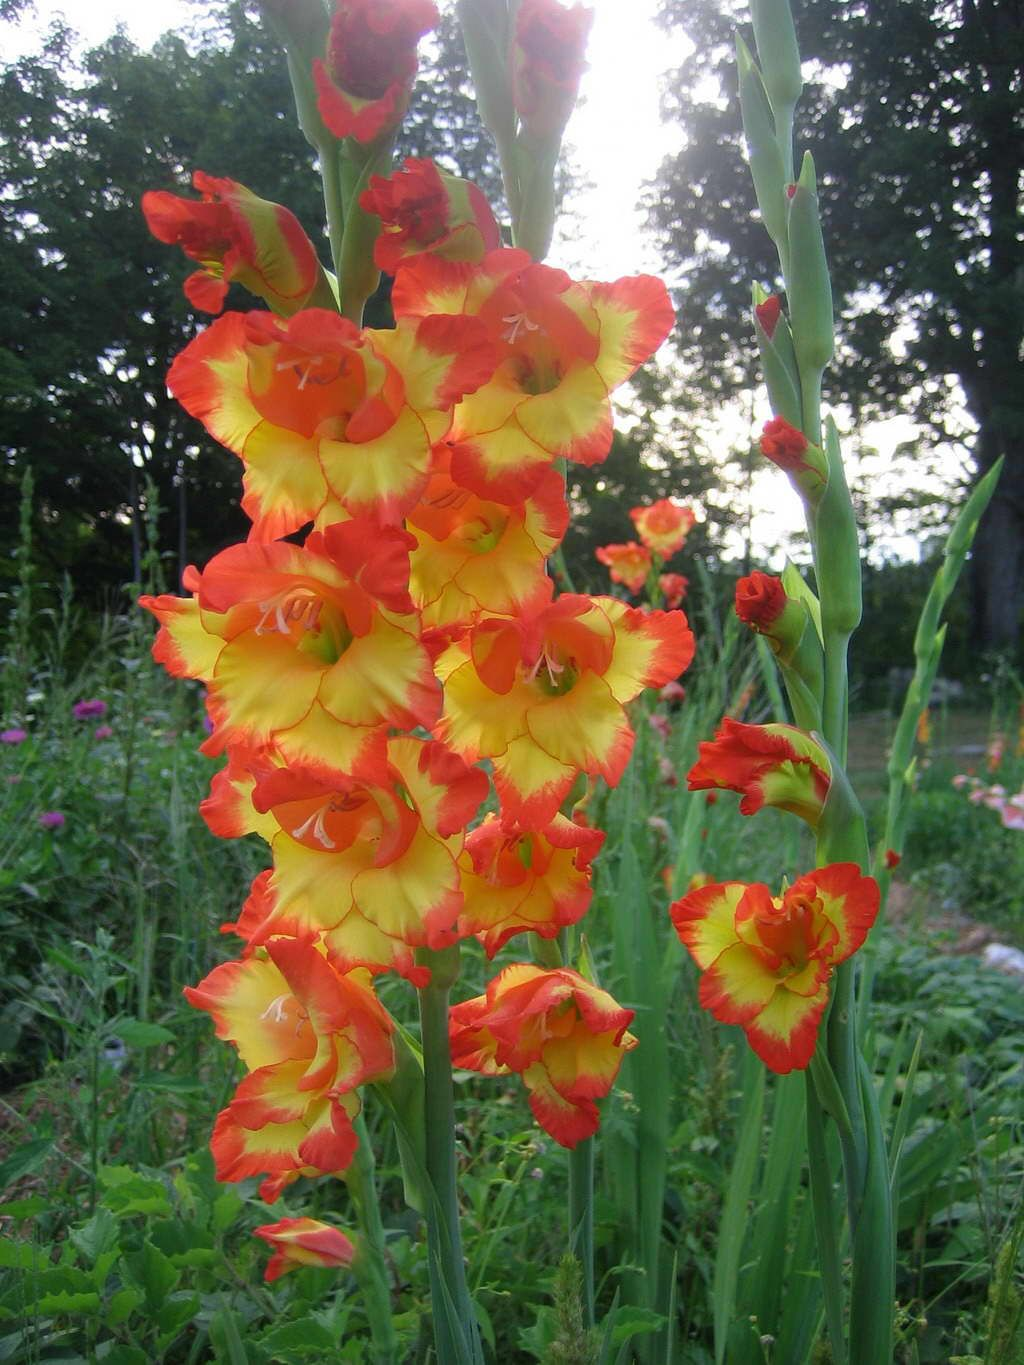 Glads Flowers Gladiolus Flowers Pictures Gladiolus Flowers History Gladiolus Flower Gladiolus Flower Pictures Flower Pictures